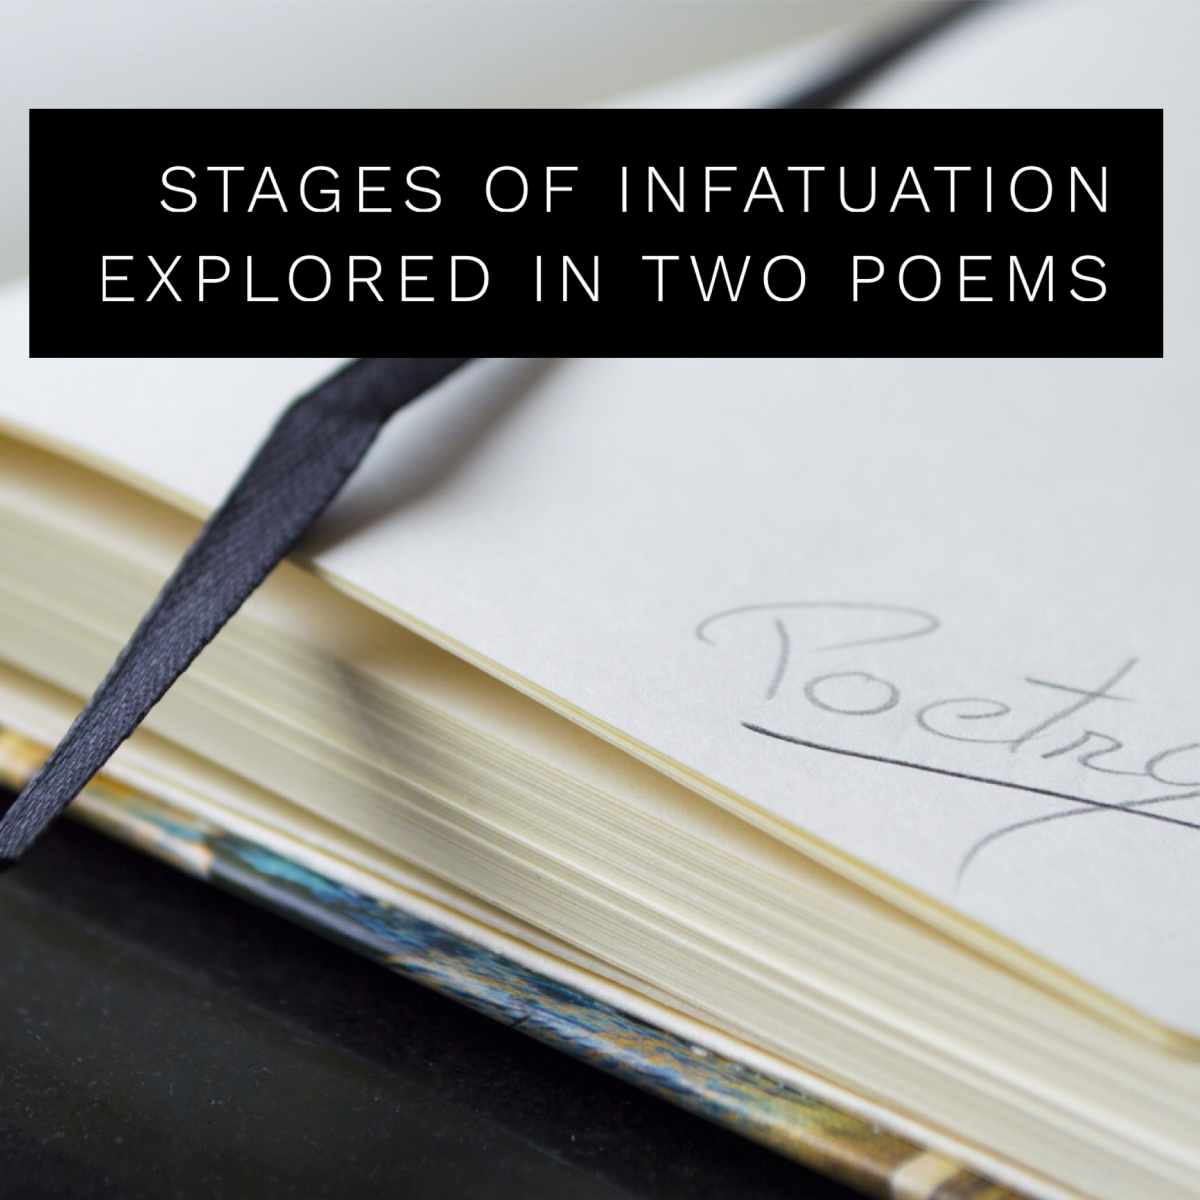 Stages of Infatuation Explored in Two Poems